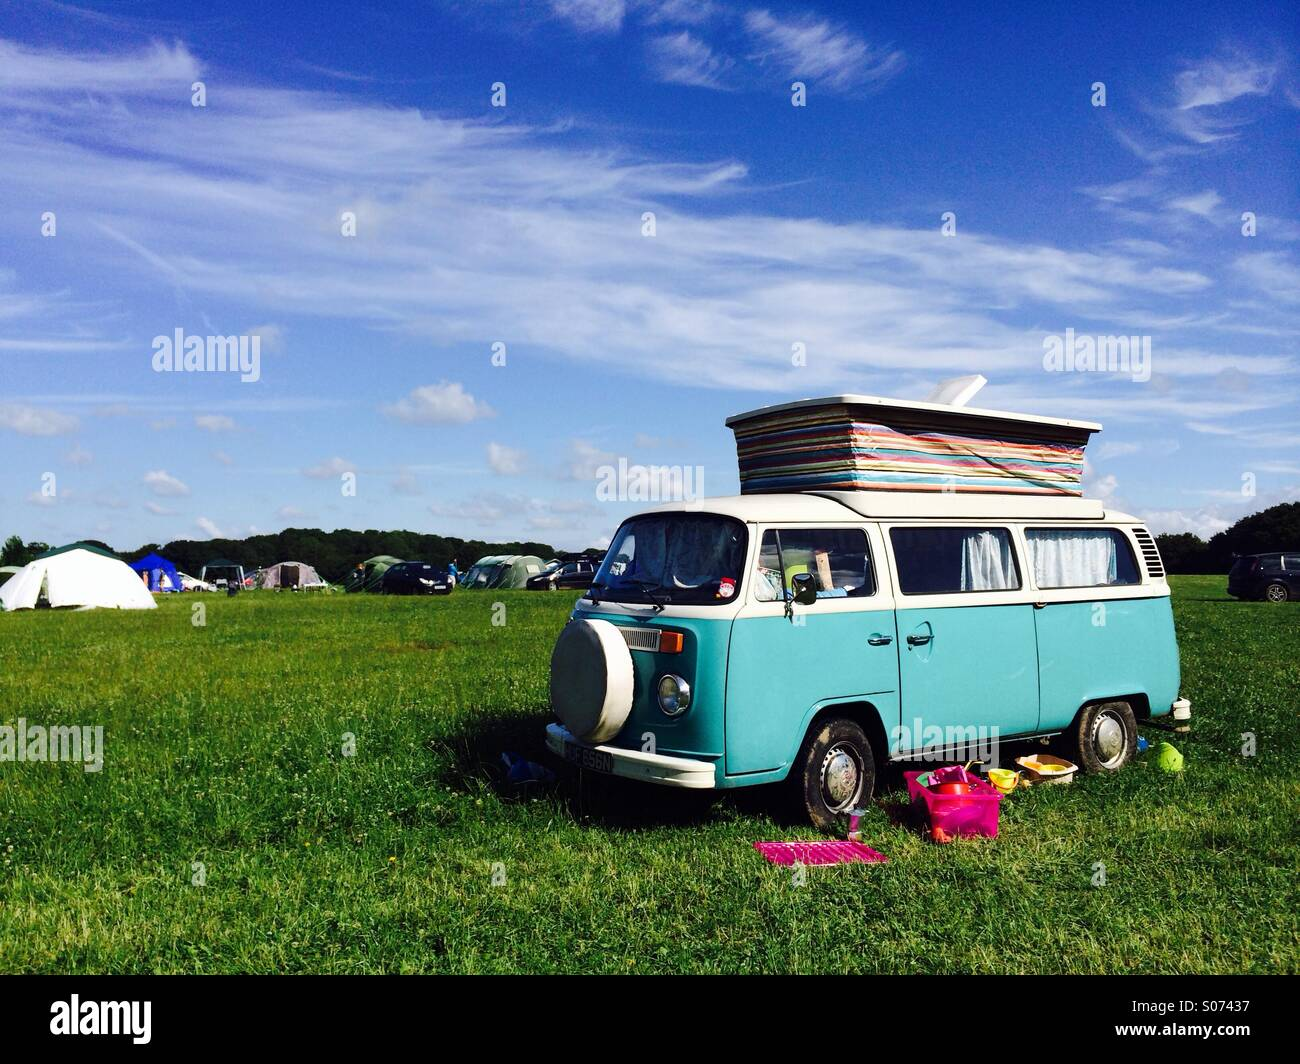 VW campervan in a camping field - Stock Image